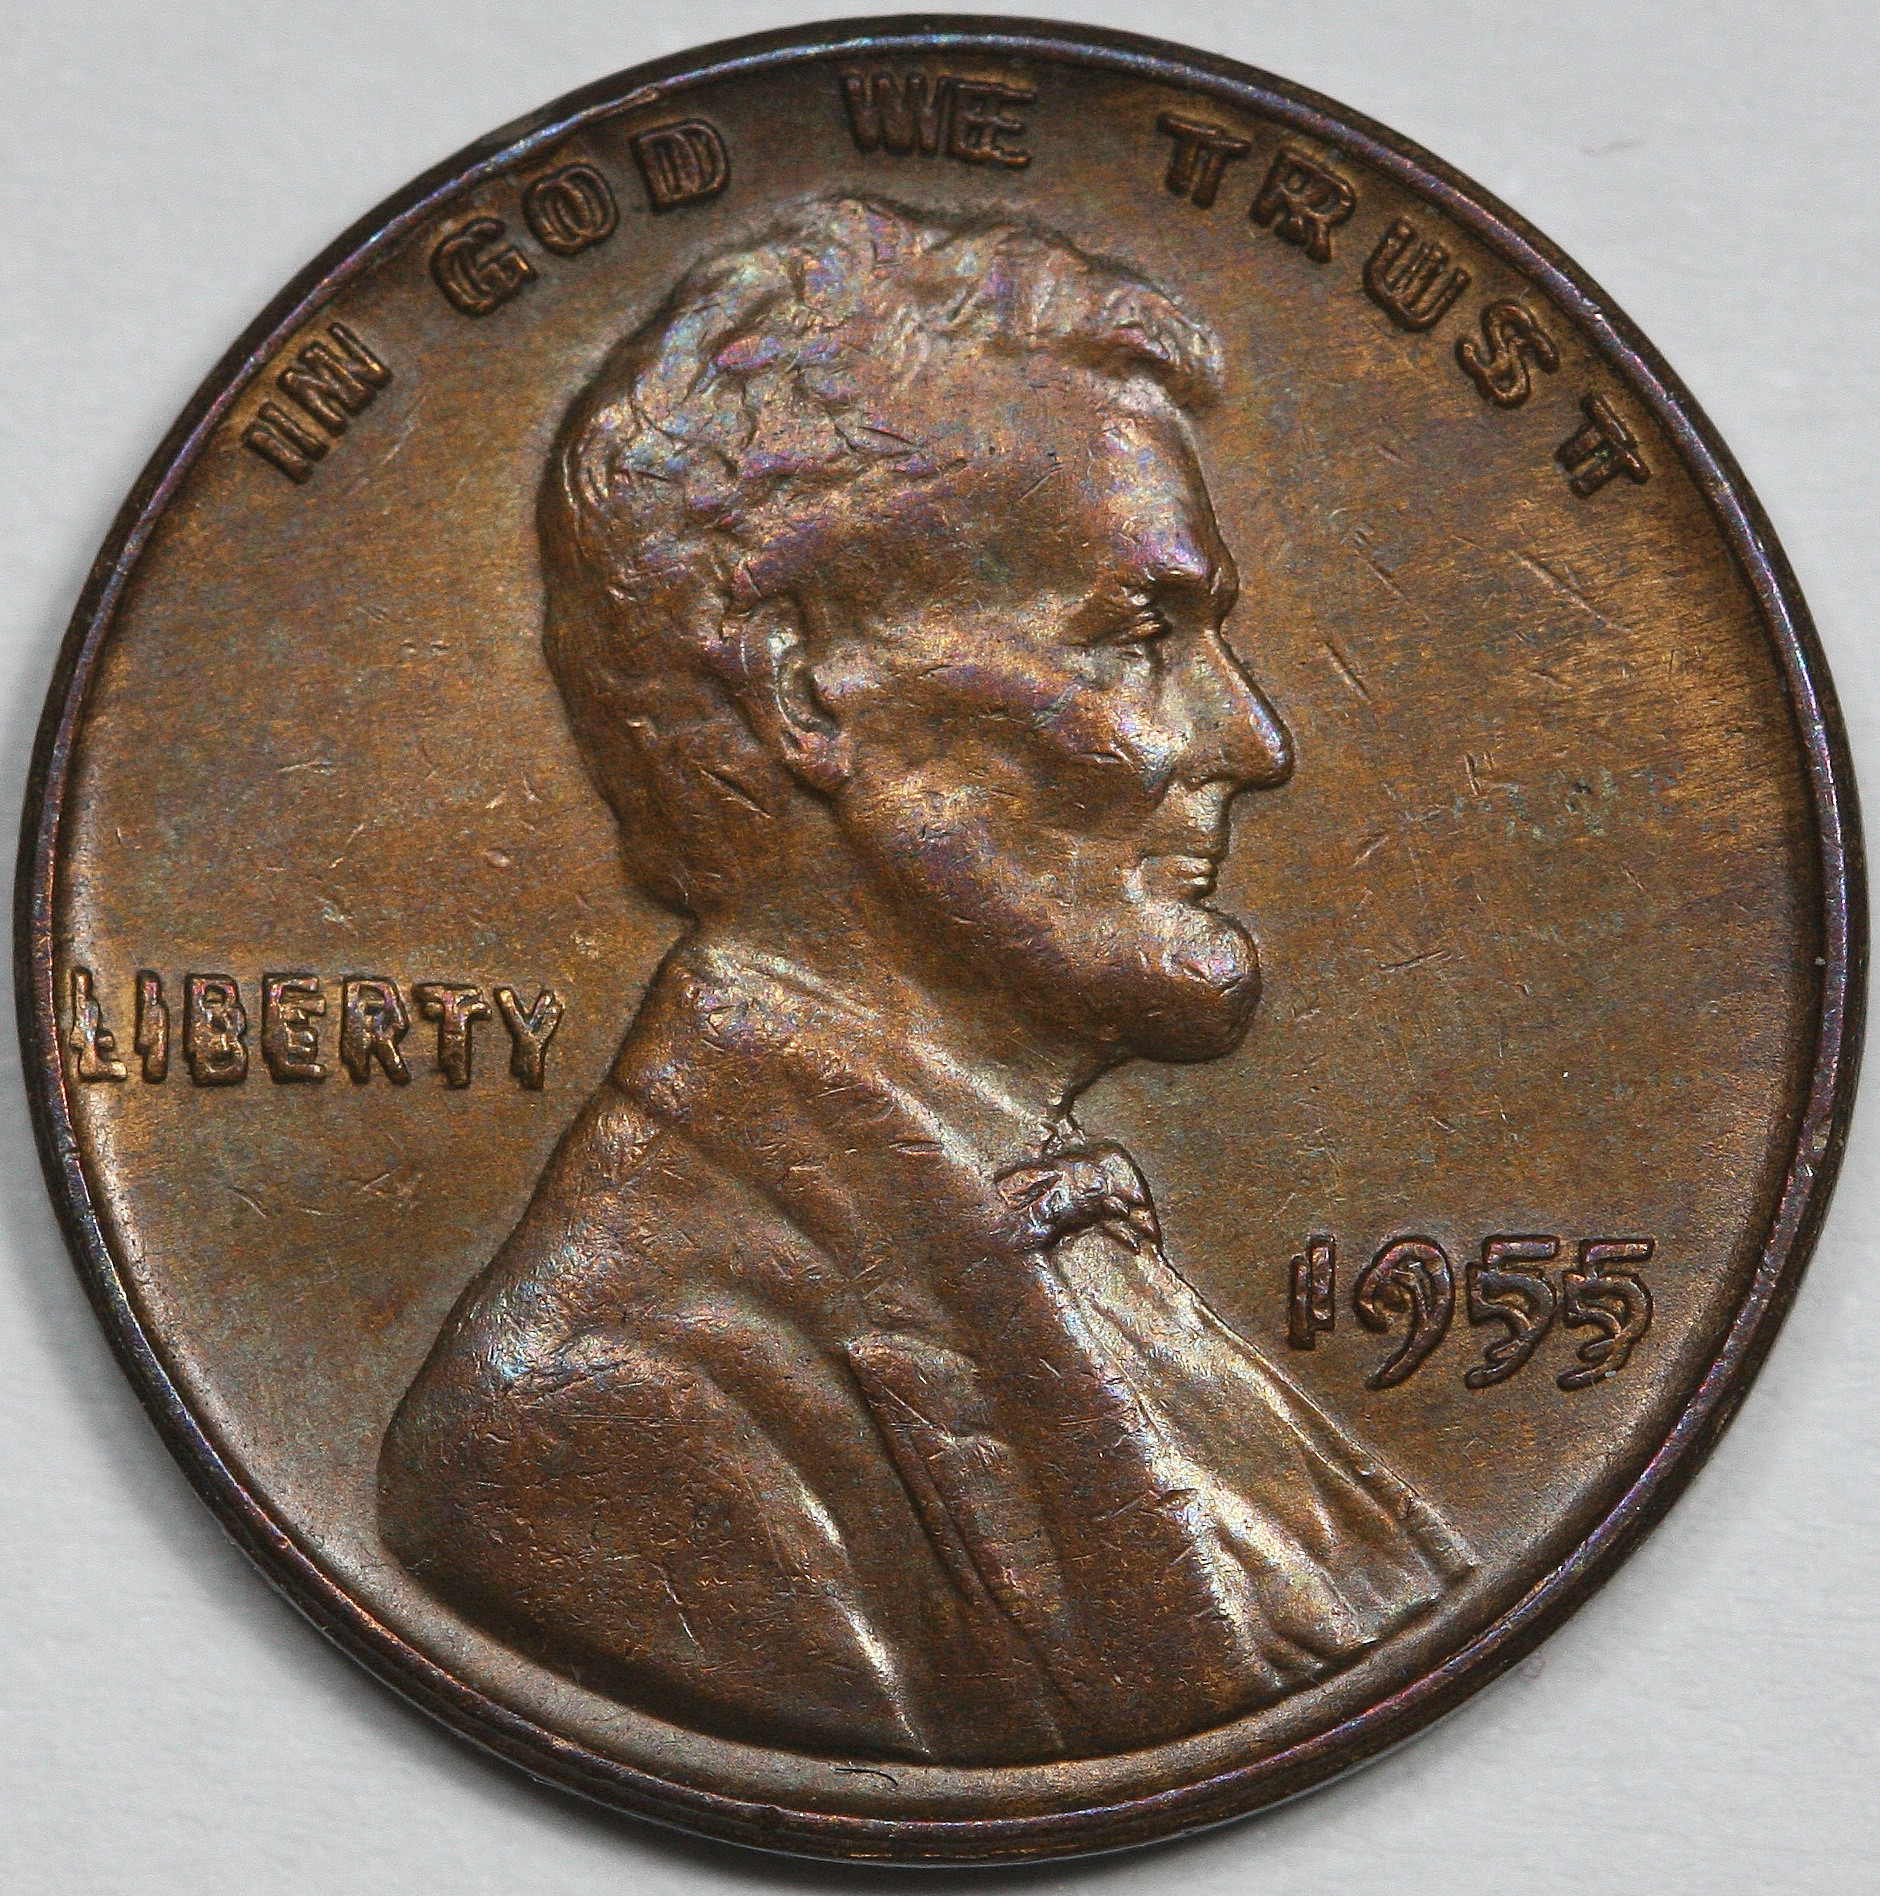 Awesome Cent Lincoln Die Doubled 1955 Upcscavenger Double Die Penny Value Of Wonderful 48 Pictures Double Die Penny Value